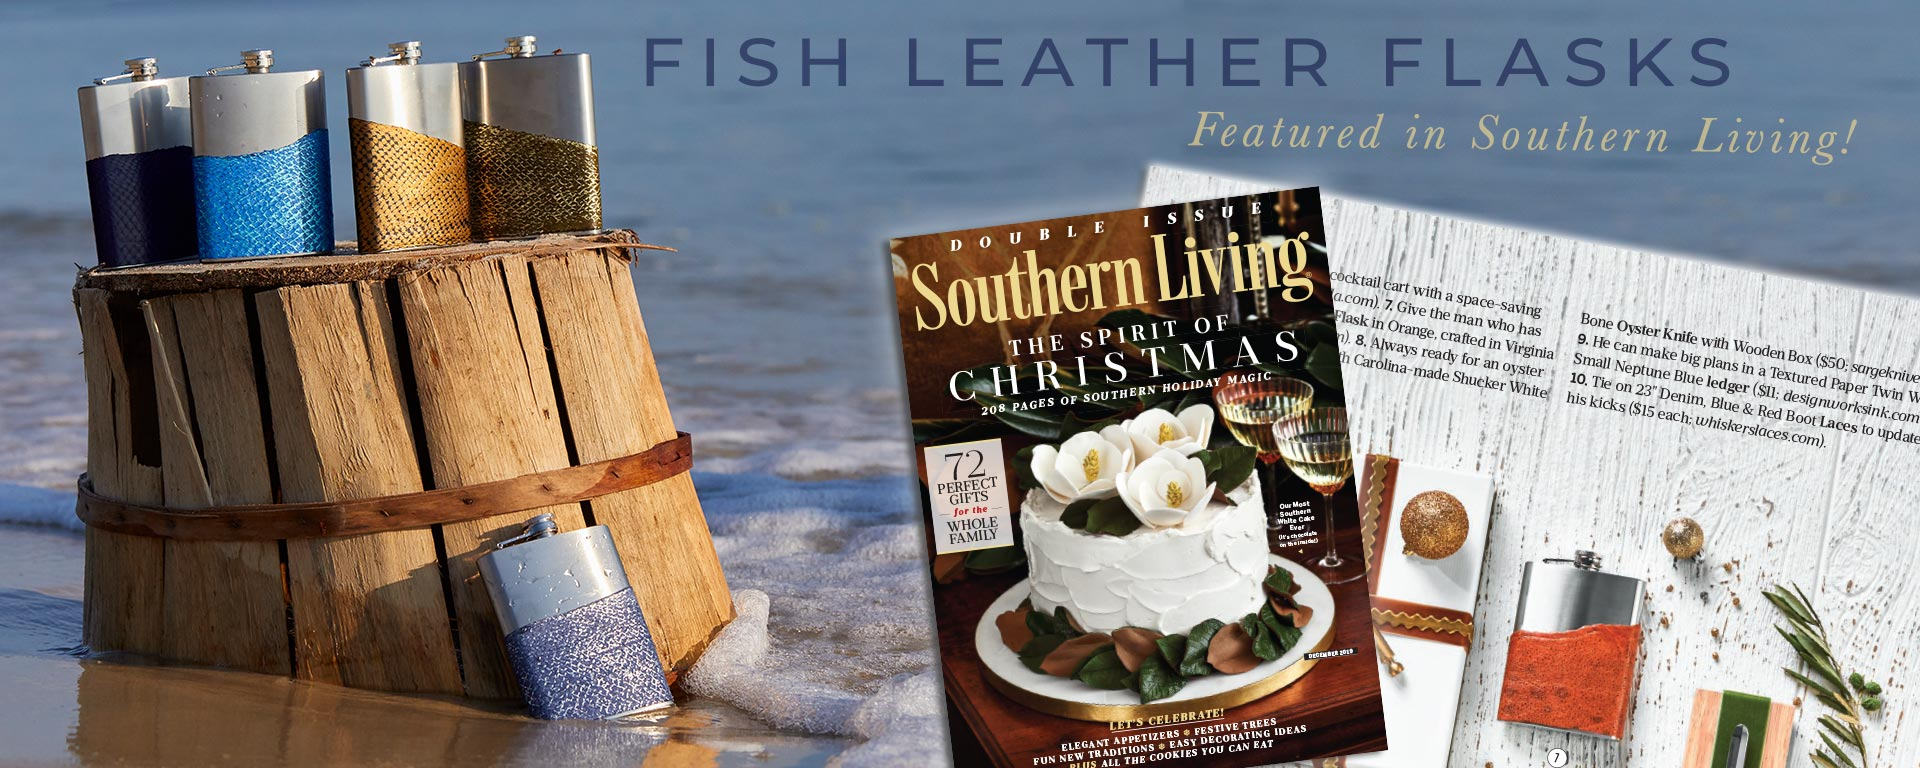 Fish Leather Flasks, as seen in Southern Living!